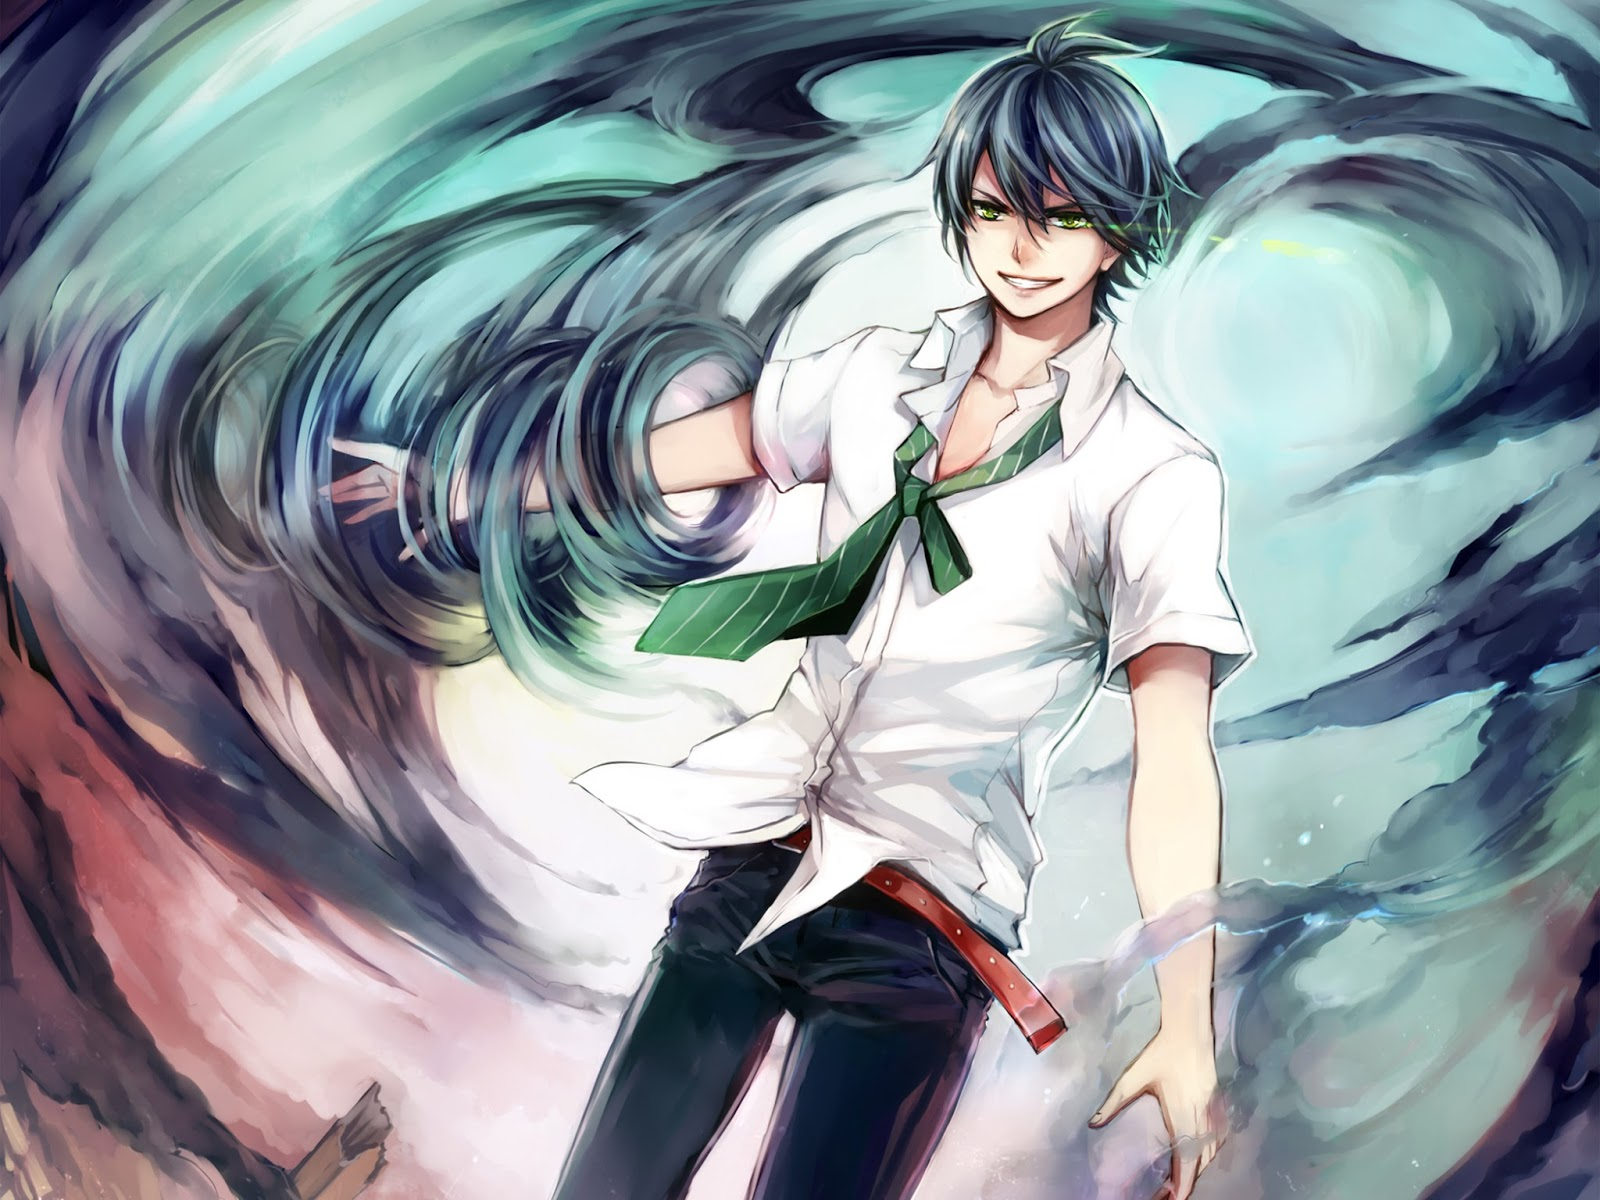 Anime Male Wind Grin Smile HD Wallpaper Backgrounds Image Photo 1600x1200